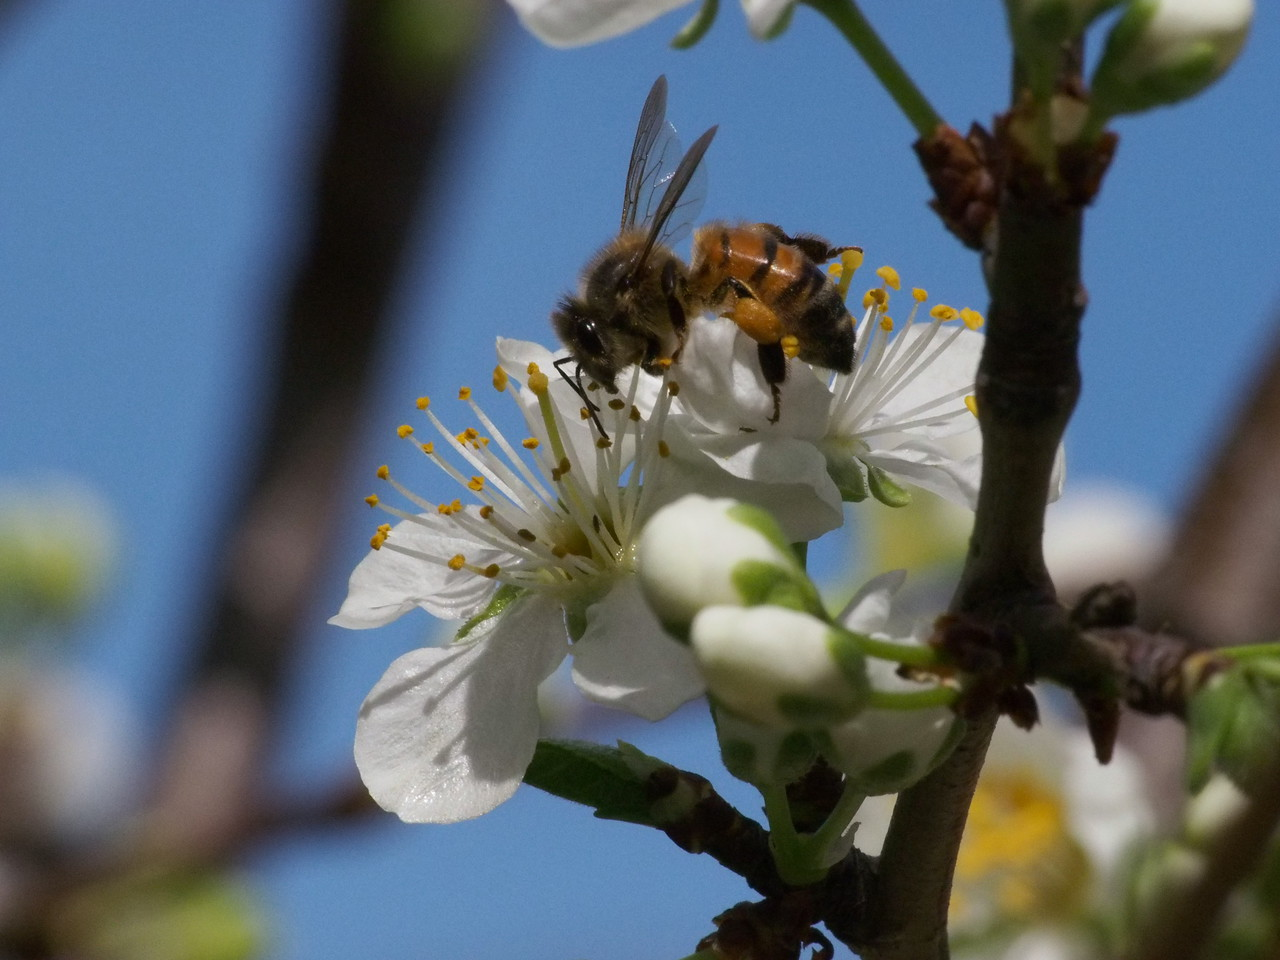 20130907_1305_1192 plum blossom and bee